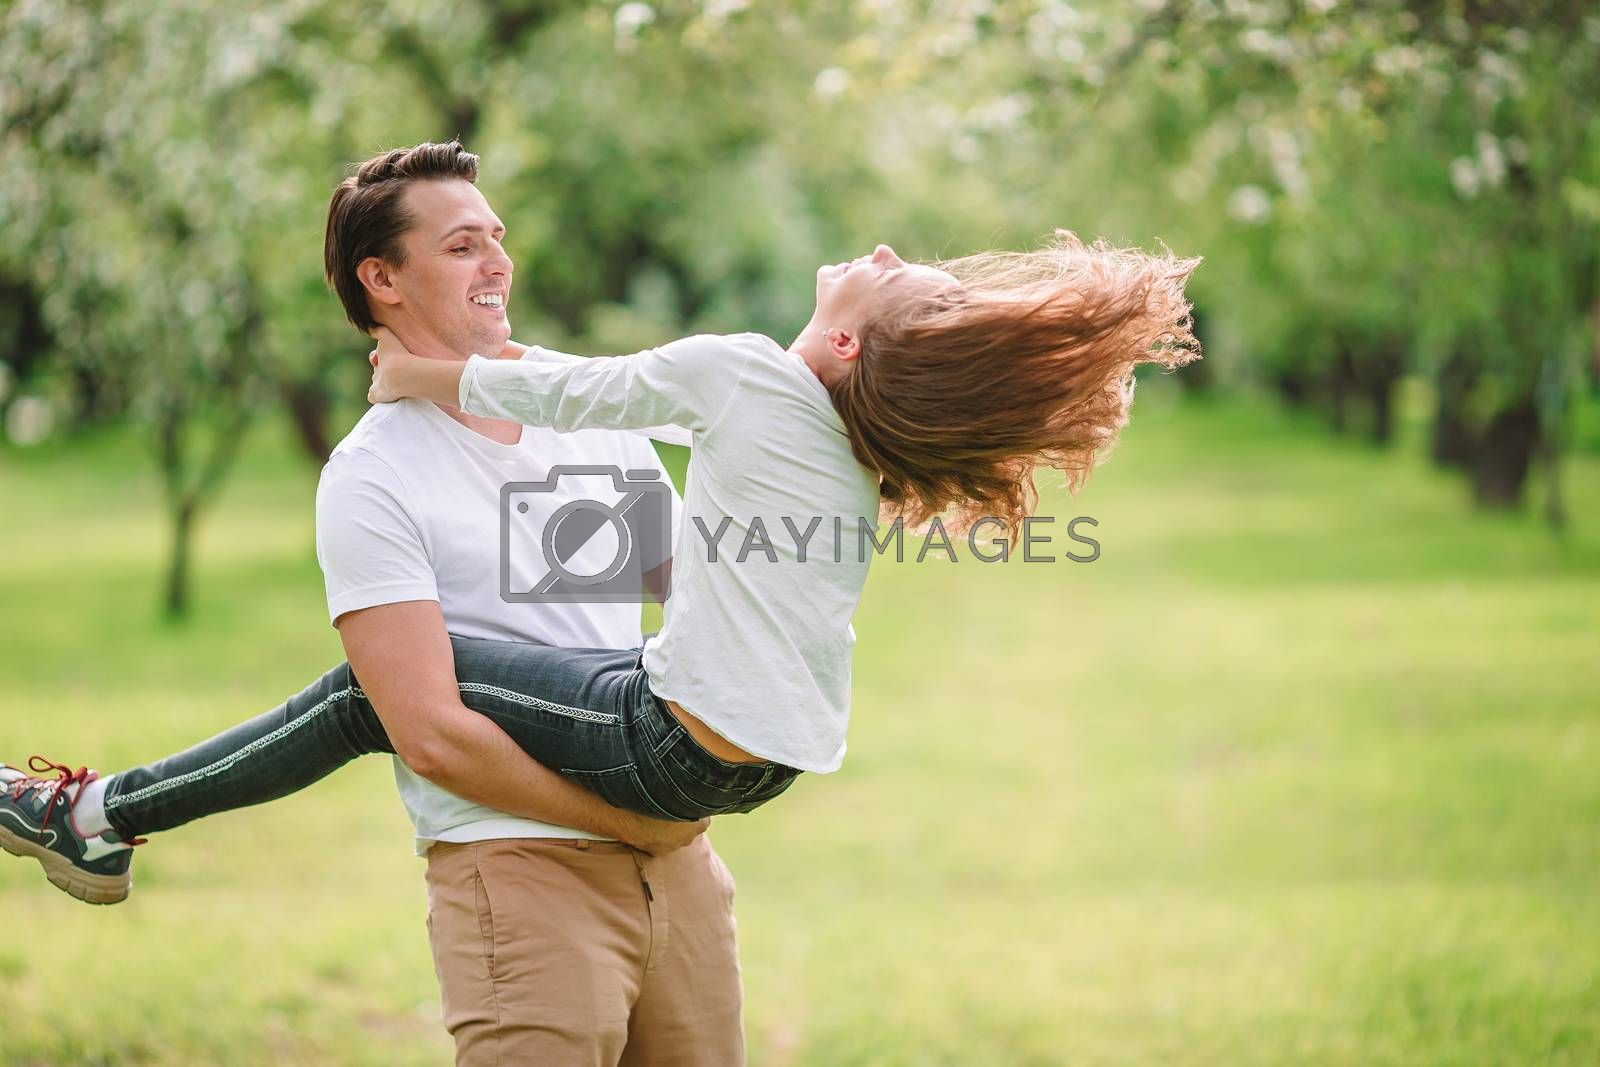 Family of dad and little girl having fun outdoors in the park